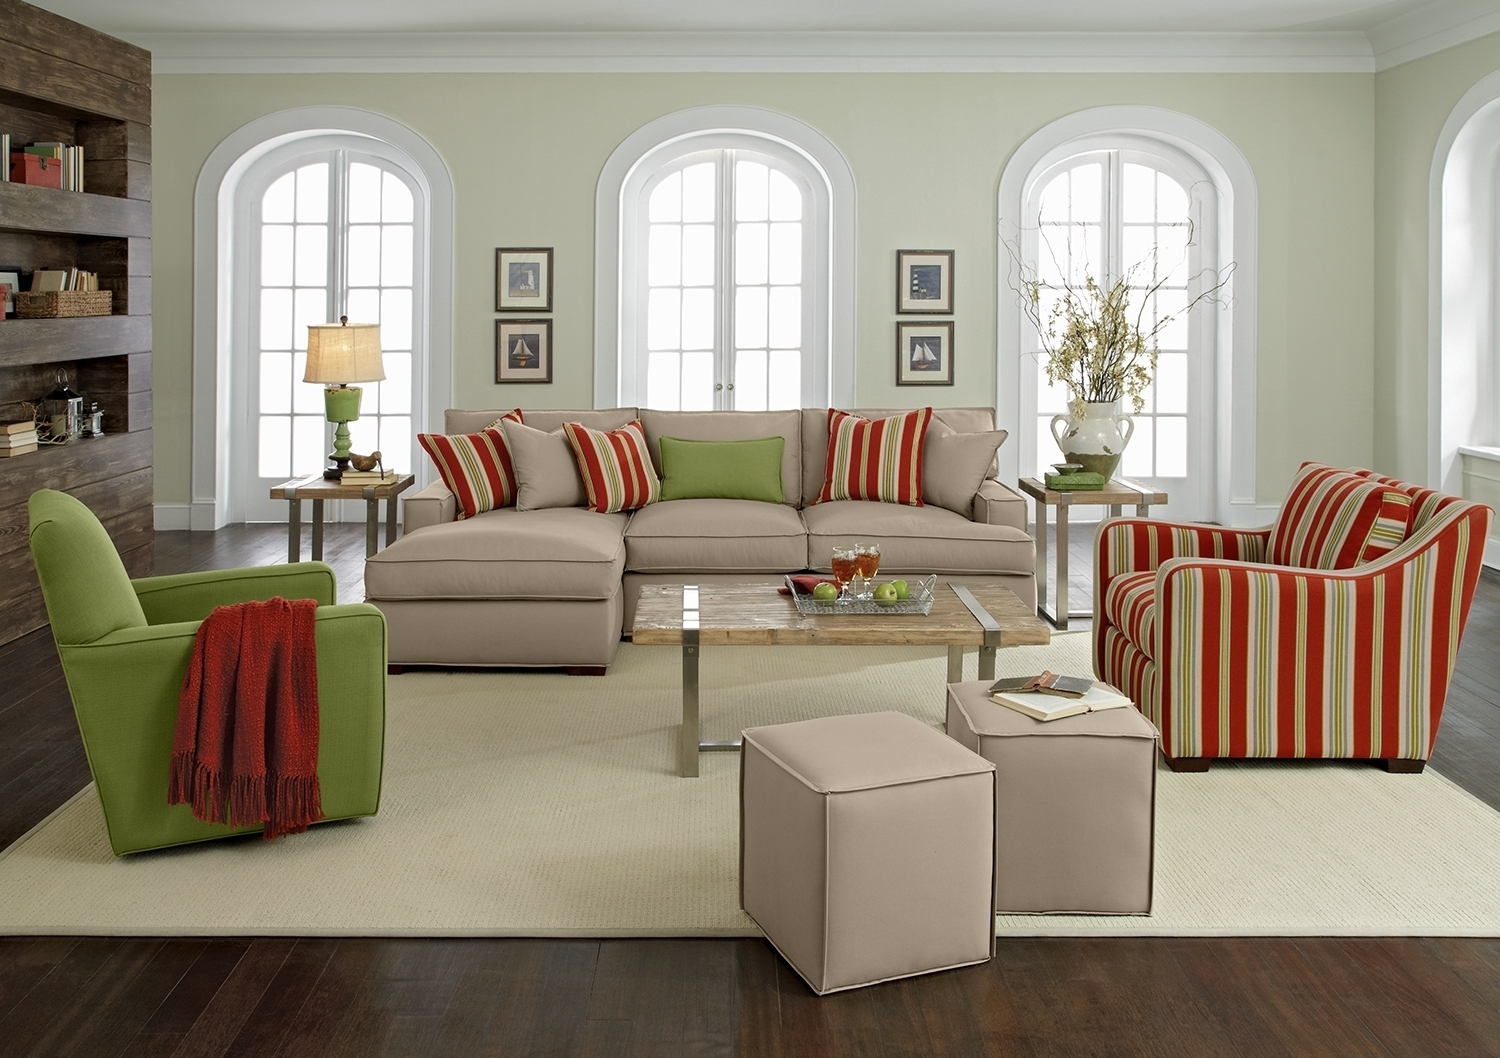 Striped Sofas And Chairs Throughout Latest Furniture: Modern White Couch And Sofa With Glass Top Coffee Table (View 2 of 20)